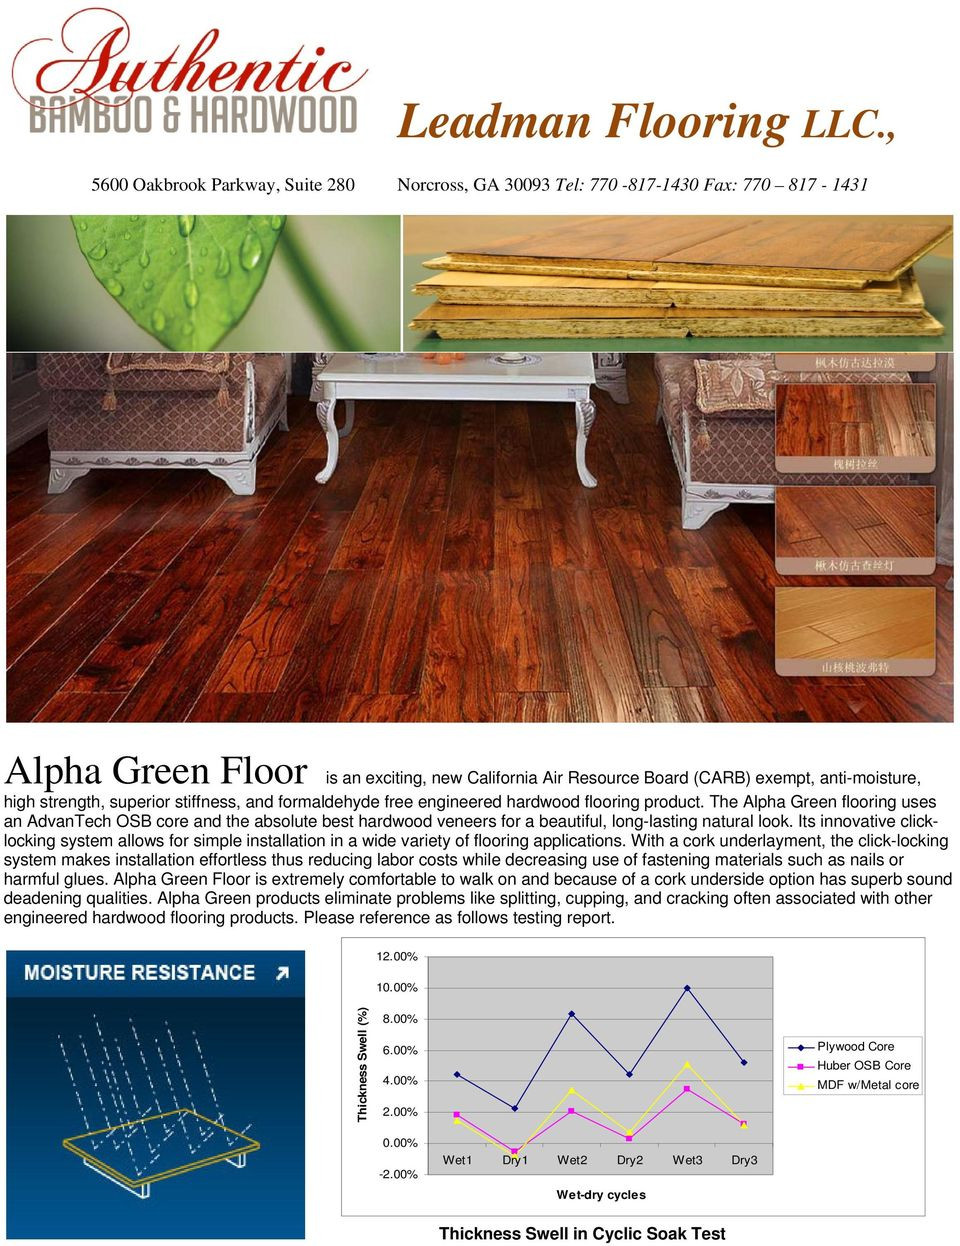 3 8 engineered hardwood flooring reviews of leadman flooring llc pdf regarding strength superior stiffness and formaldehyde free engineered hardwood flooring product